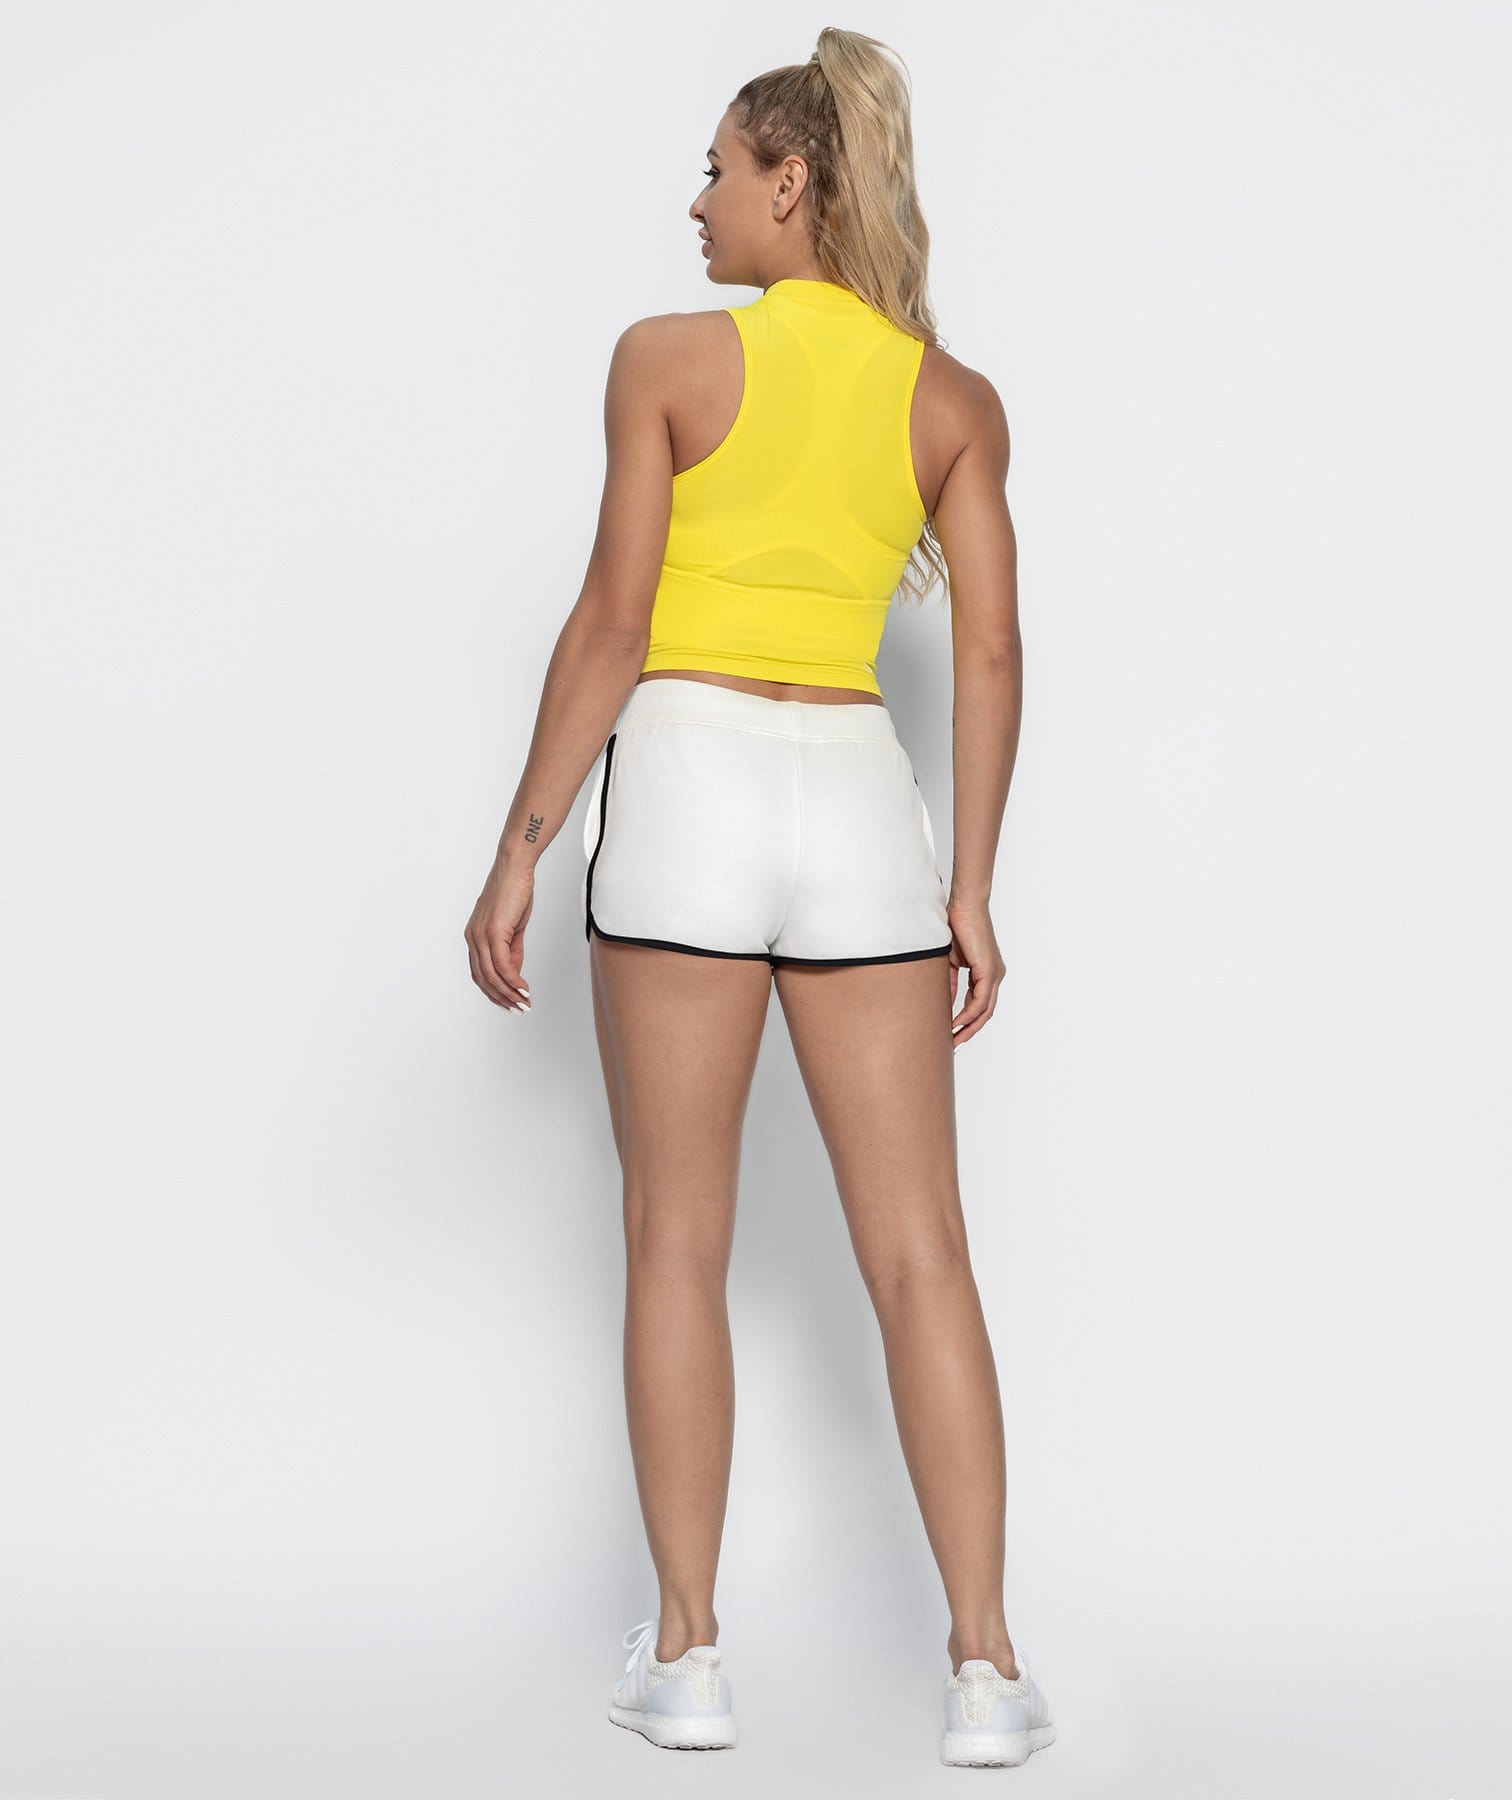 High Neck Vest - Yellow - Firm Abs Fitness